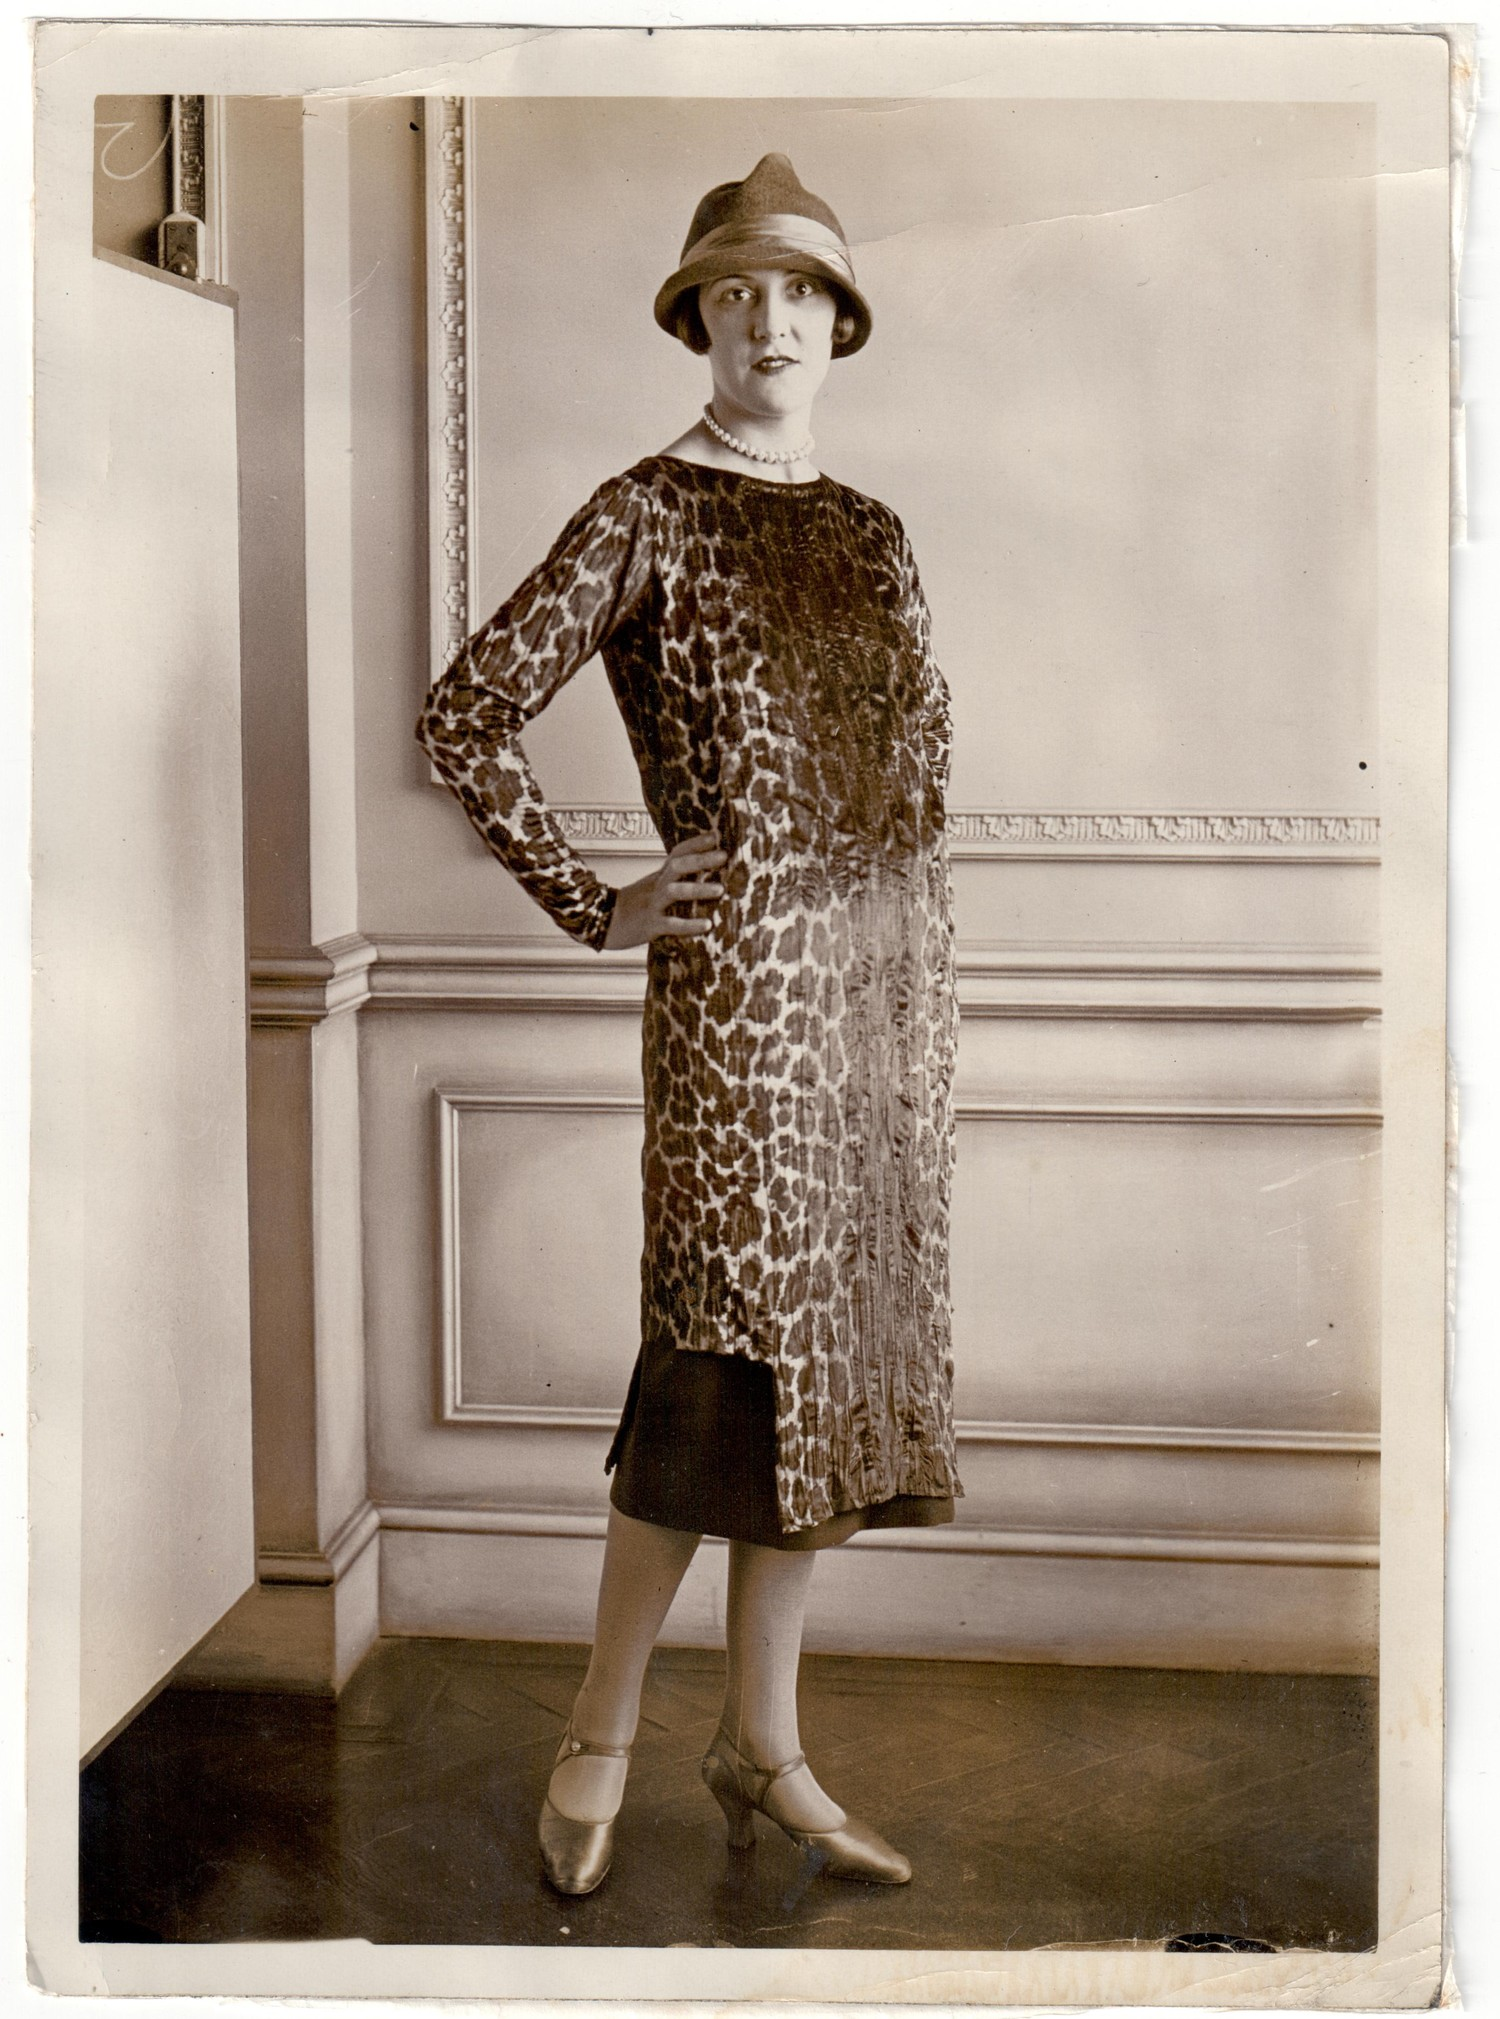 Photograph from the 1920s showing a professional model wearing a velvet dress with a design of leopard skin spots (TRC 2018.3137).